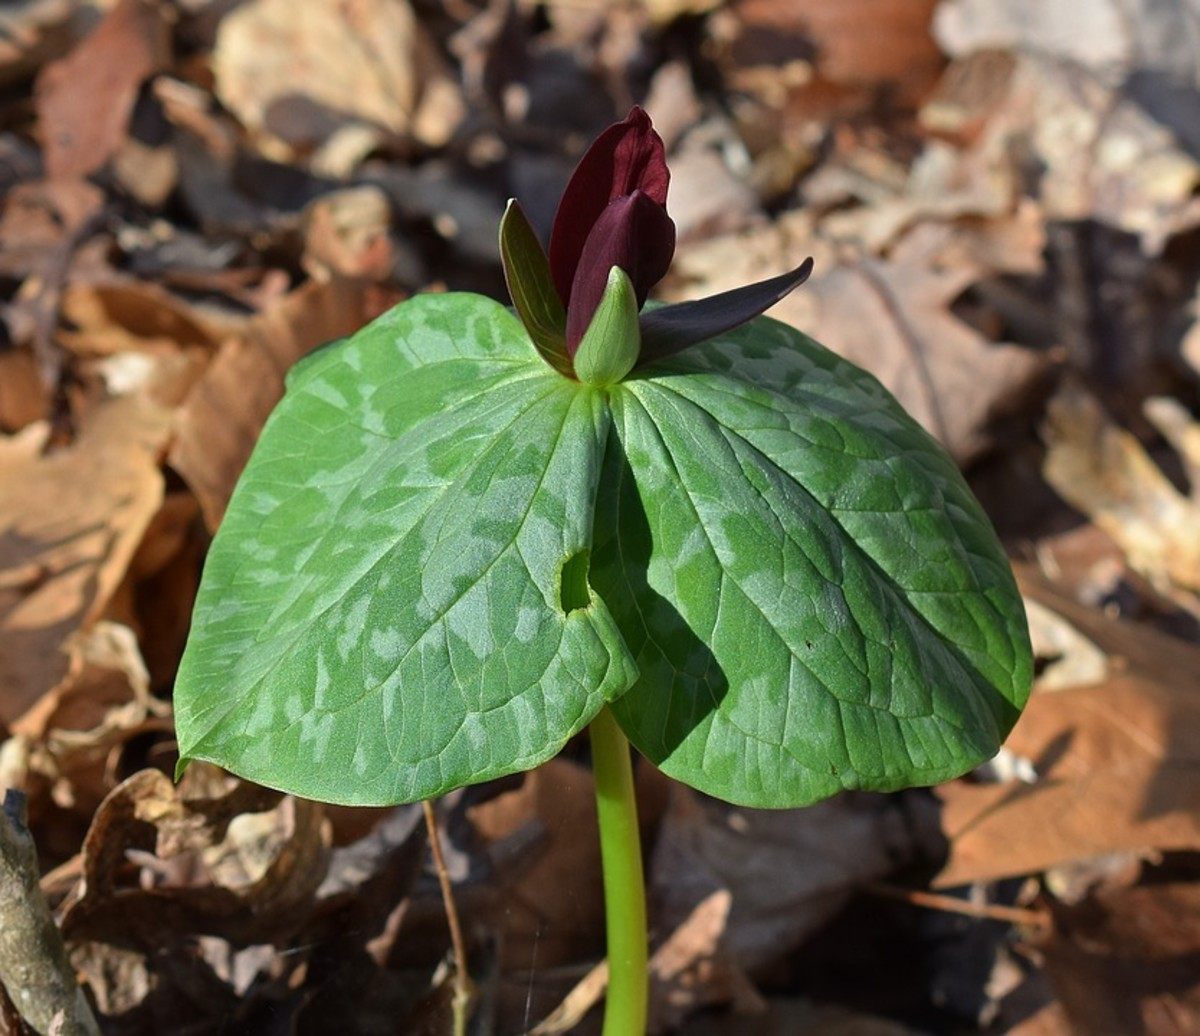 Trillium recurvatum, native to the Midwest.